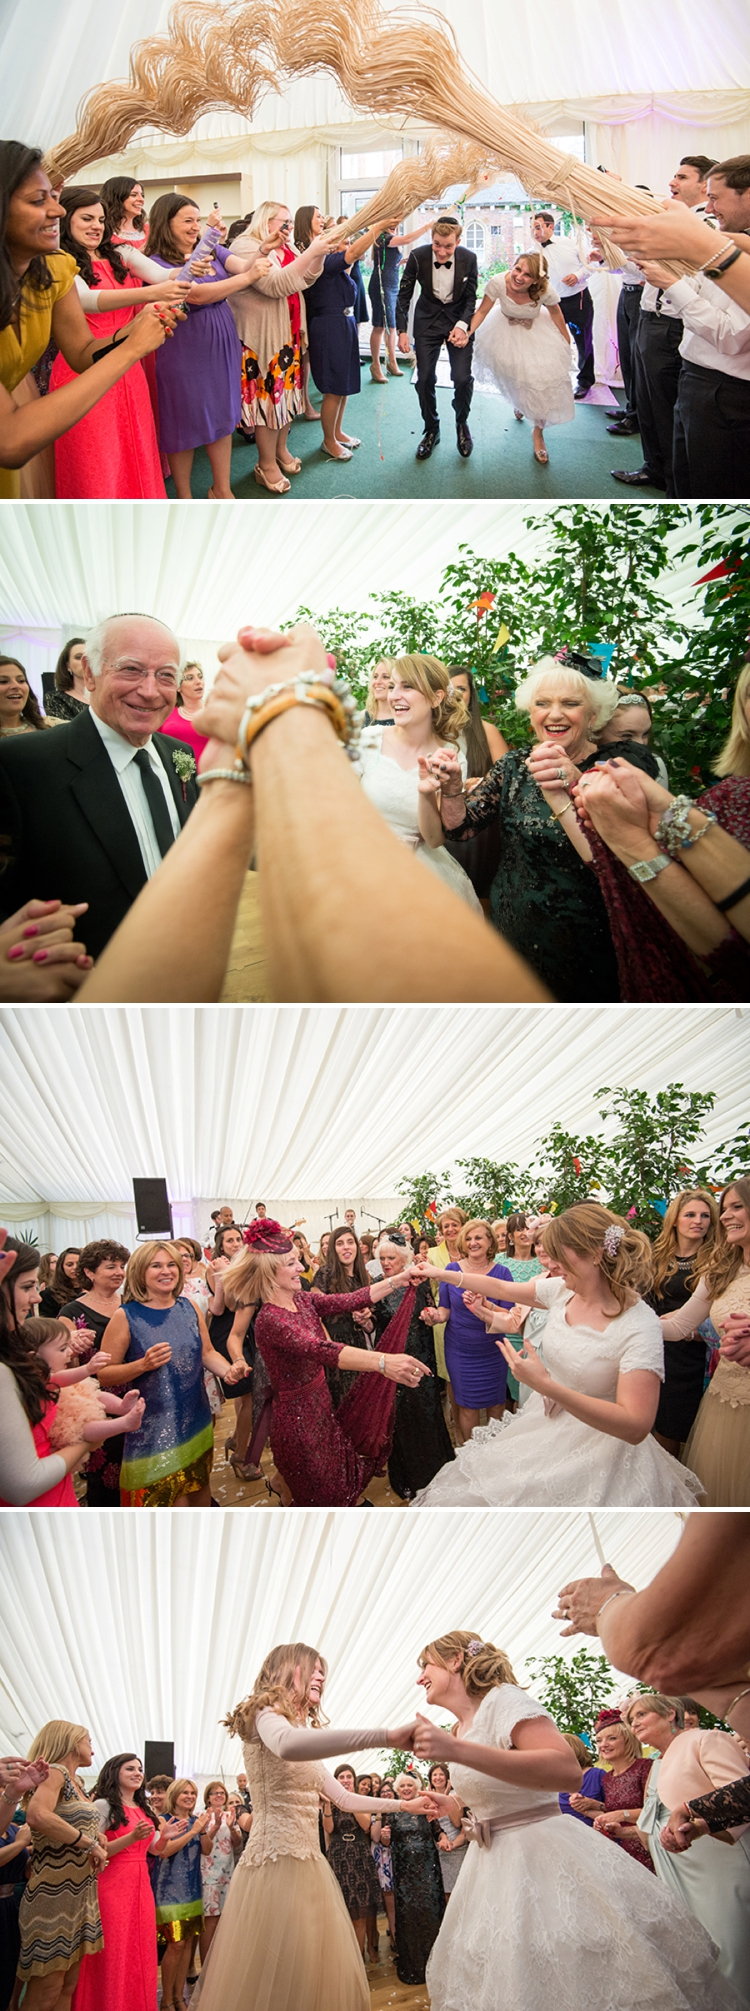 Country Garden Boho Jewish wedding at Offley Place Country House Hertfordshire UK_0019